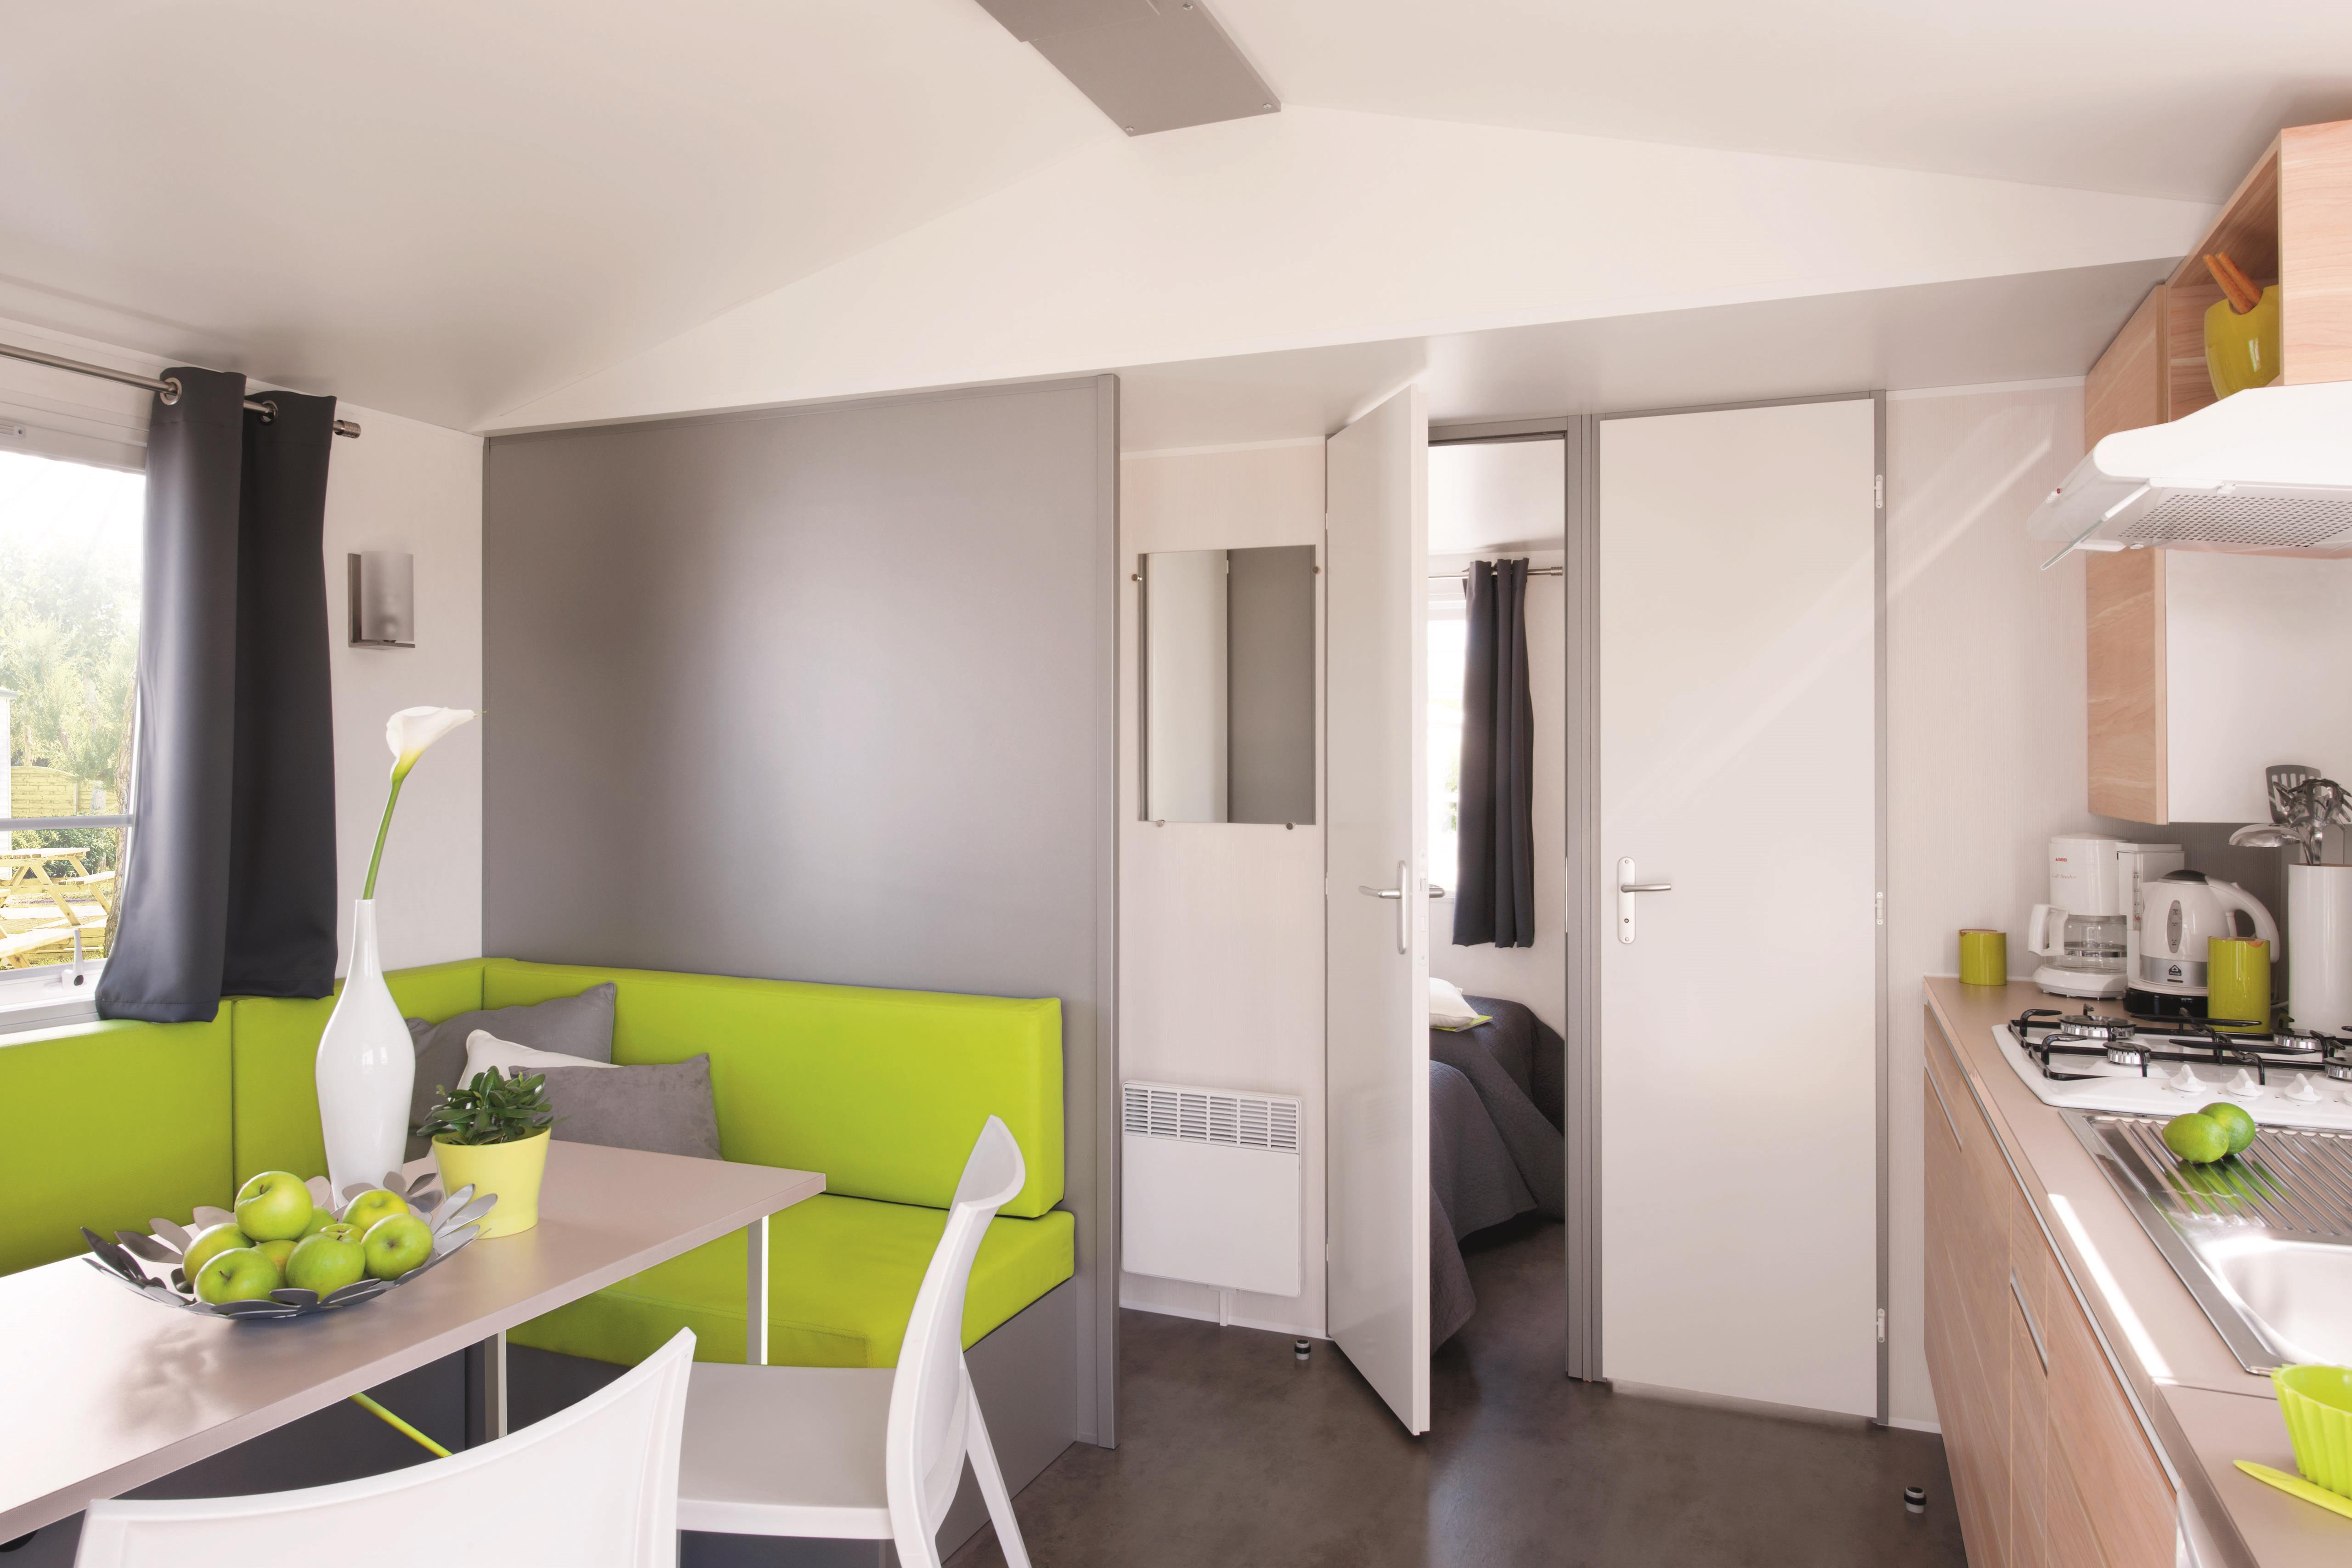 Home LOGGIA 26m² 5 years old sheltered terrace Saturday Saturday